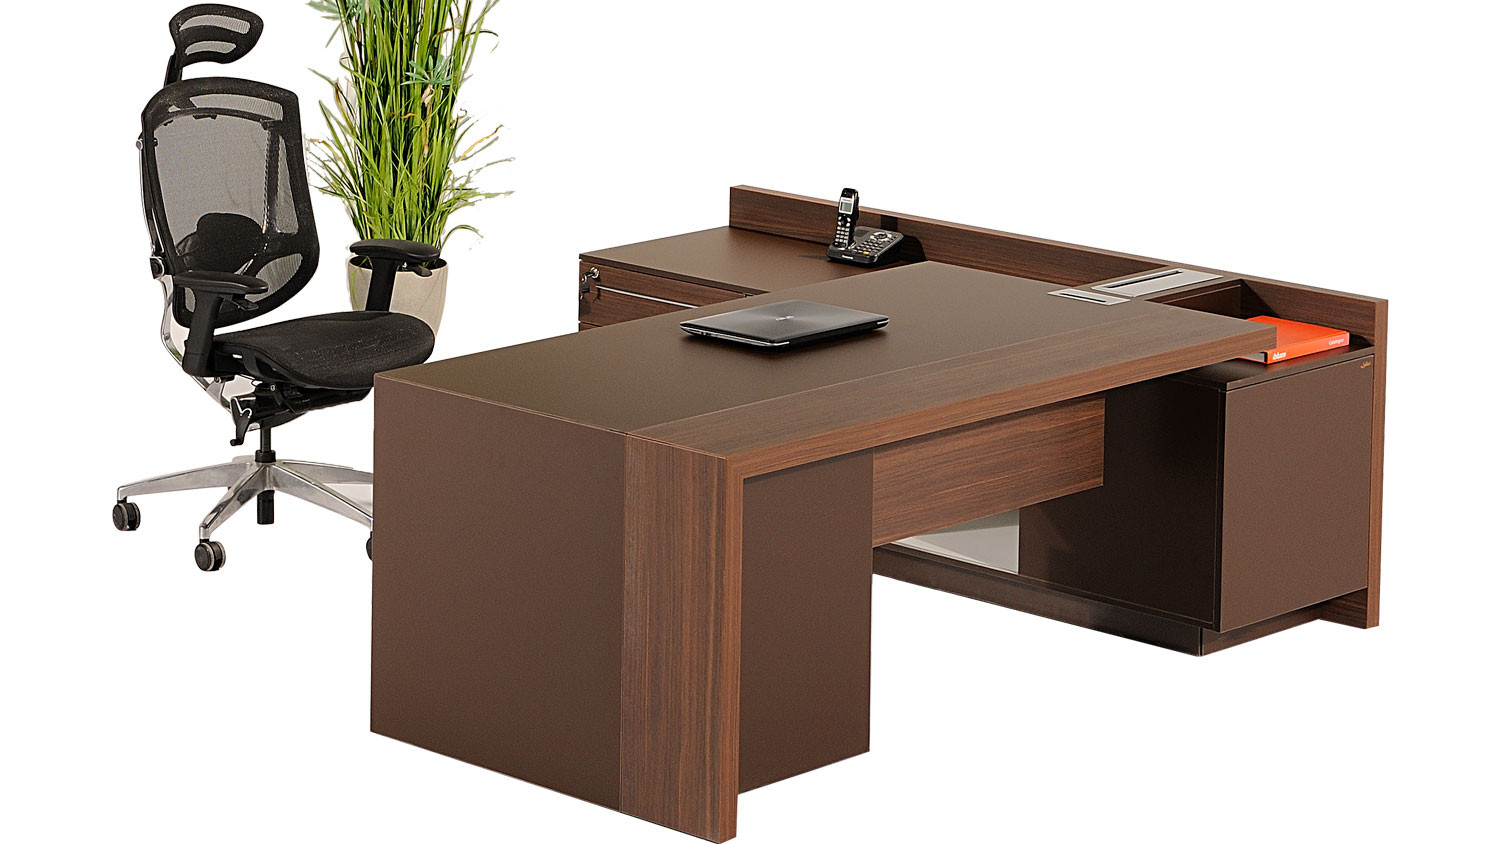 Alvand-modern-executive-desk-with-drawer